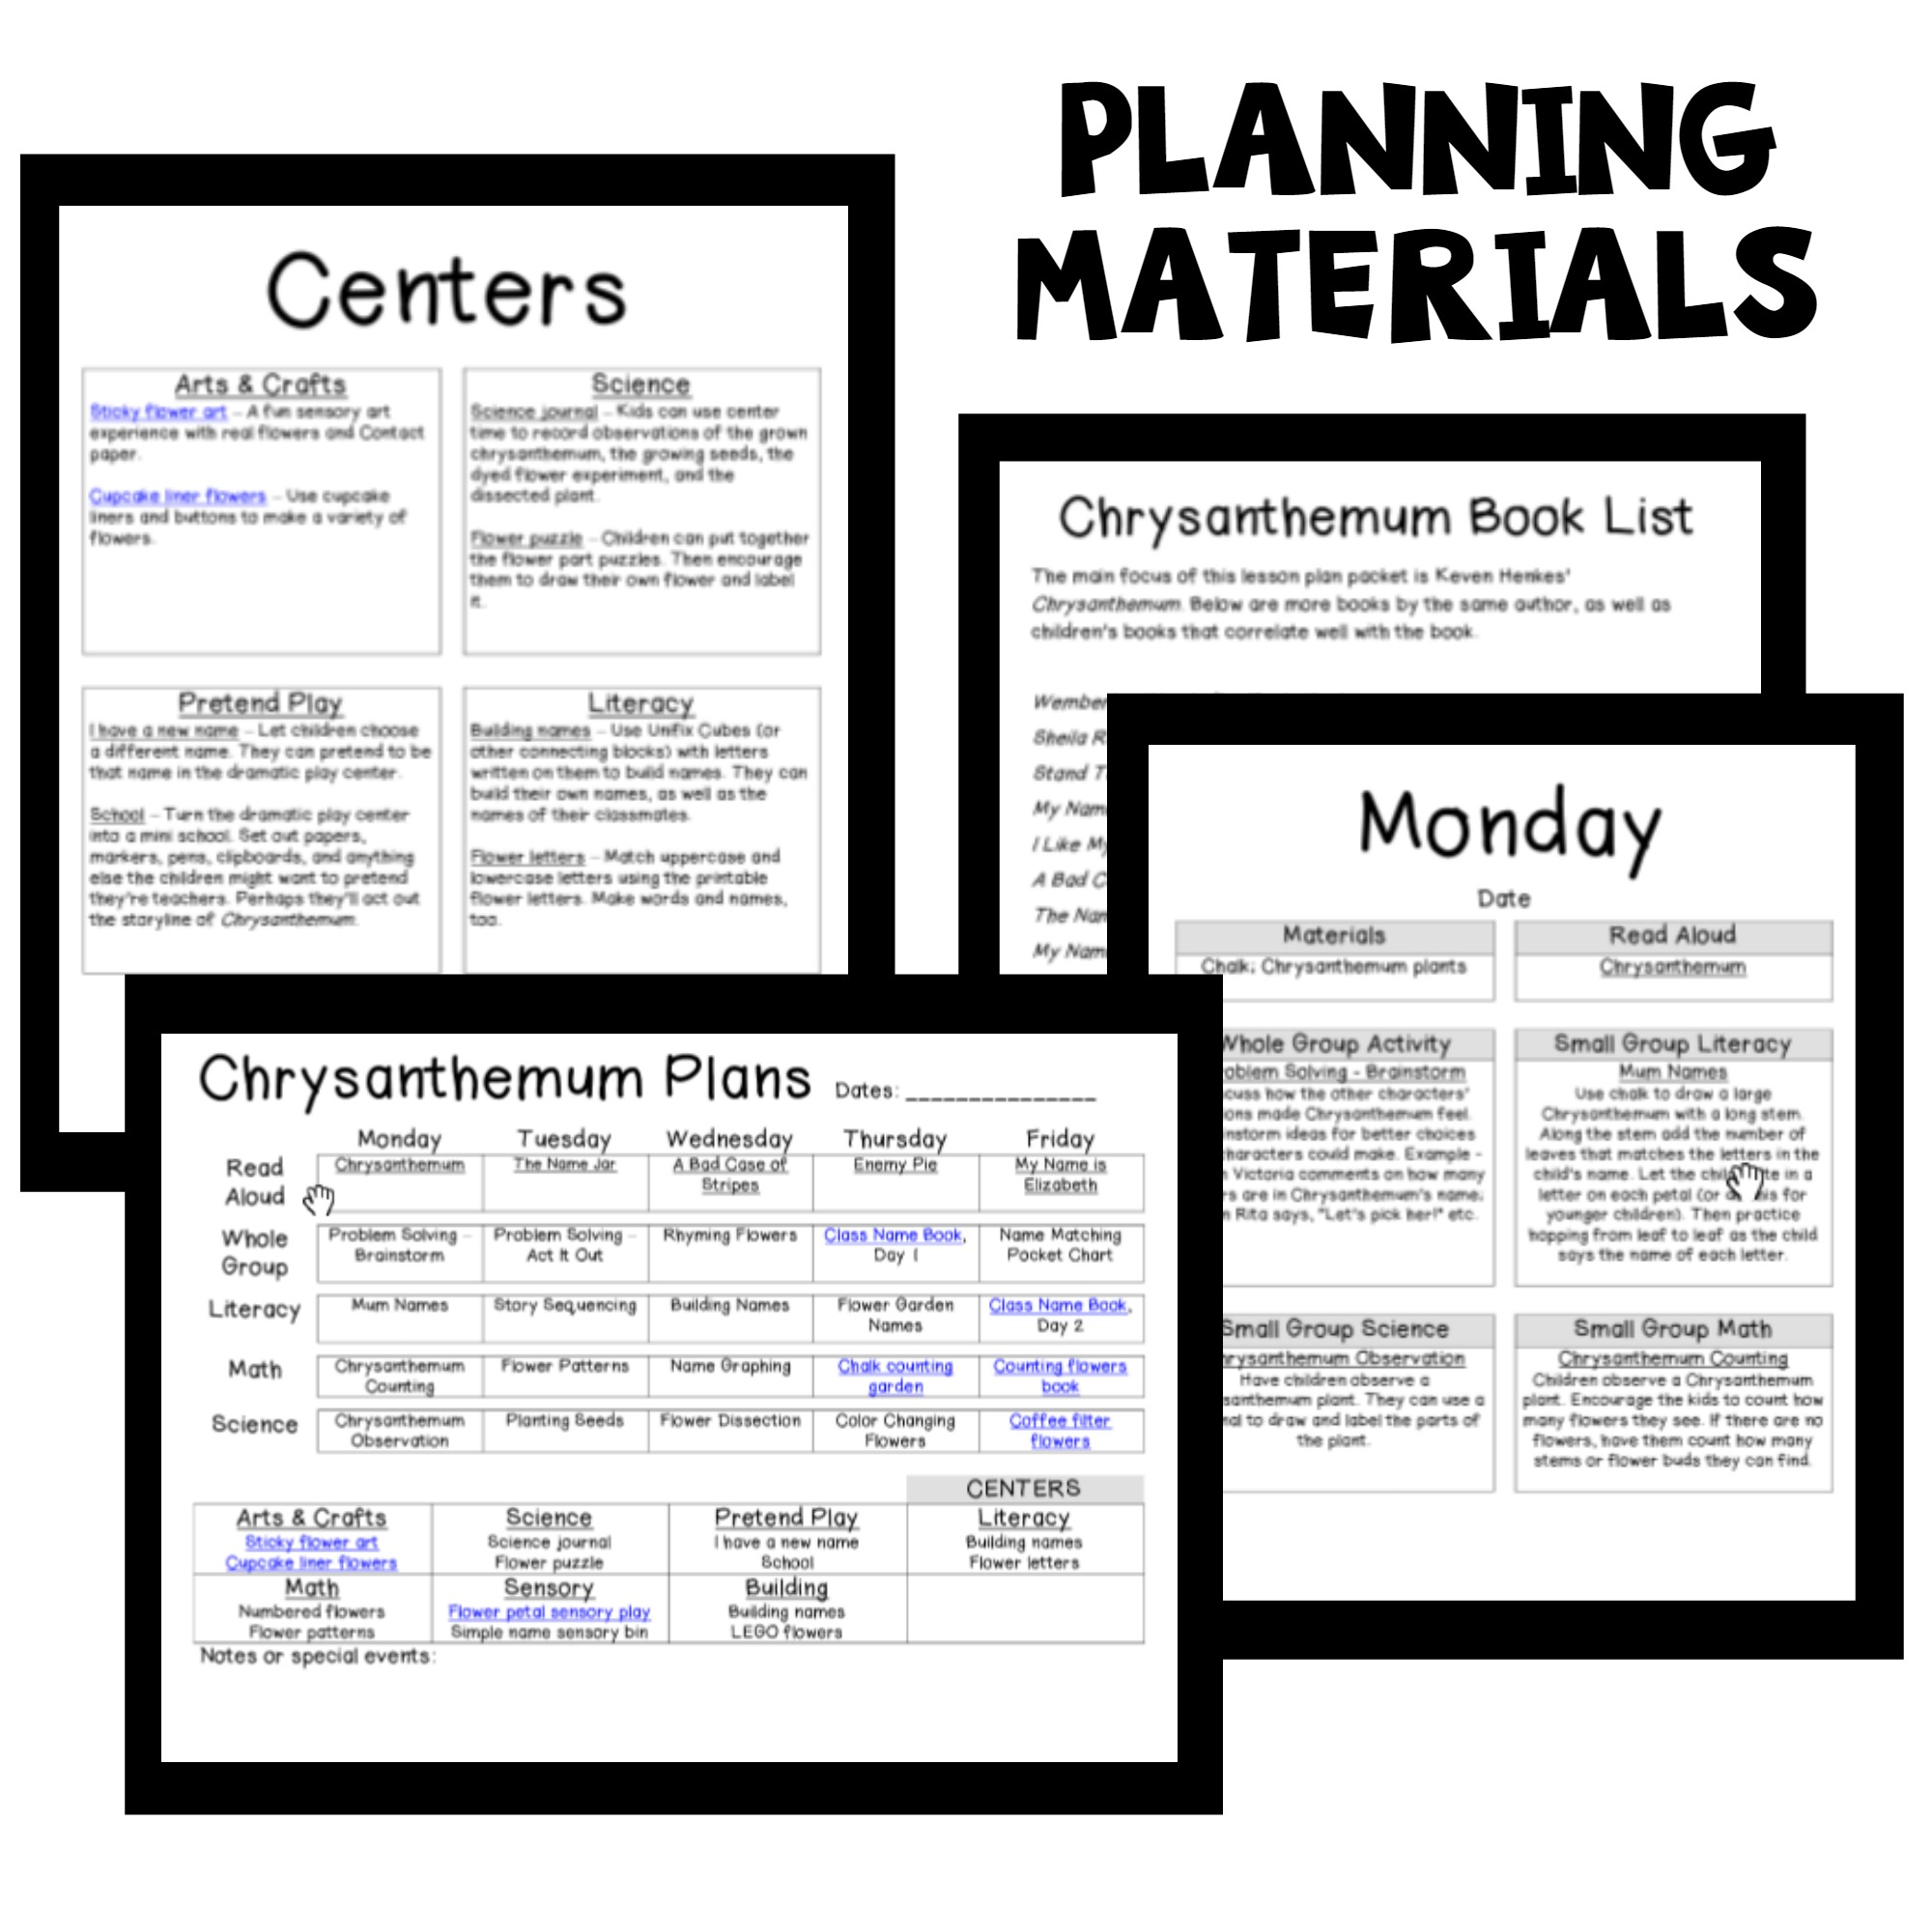 chry-pt-planning-materials